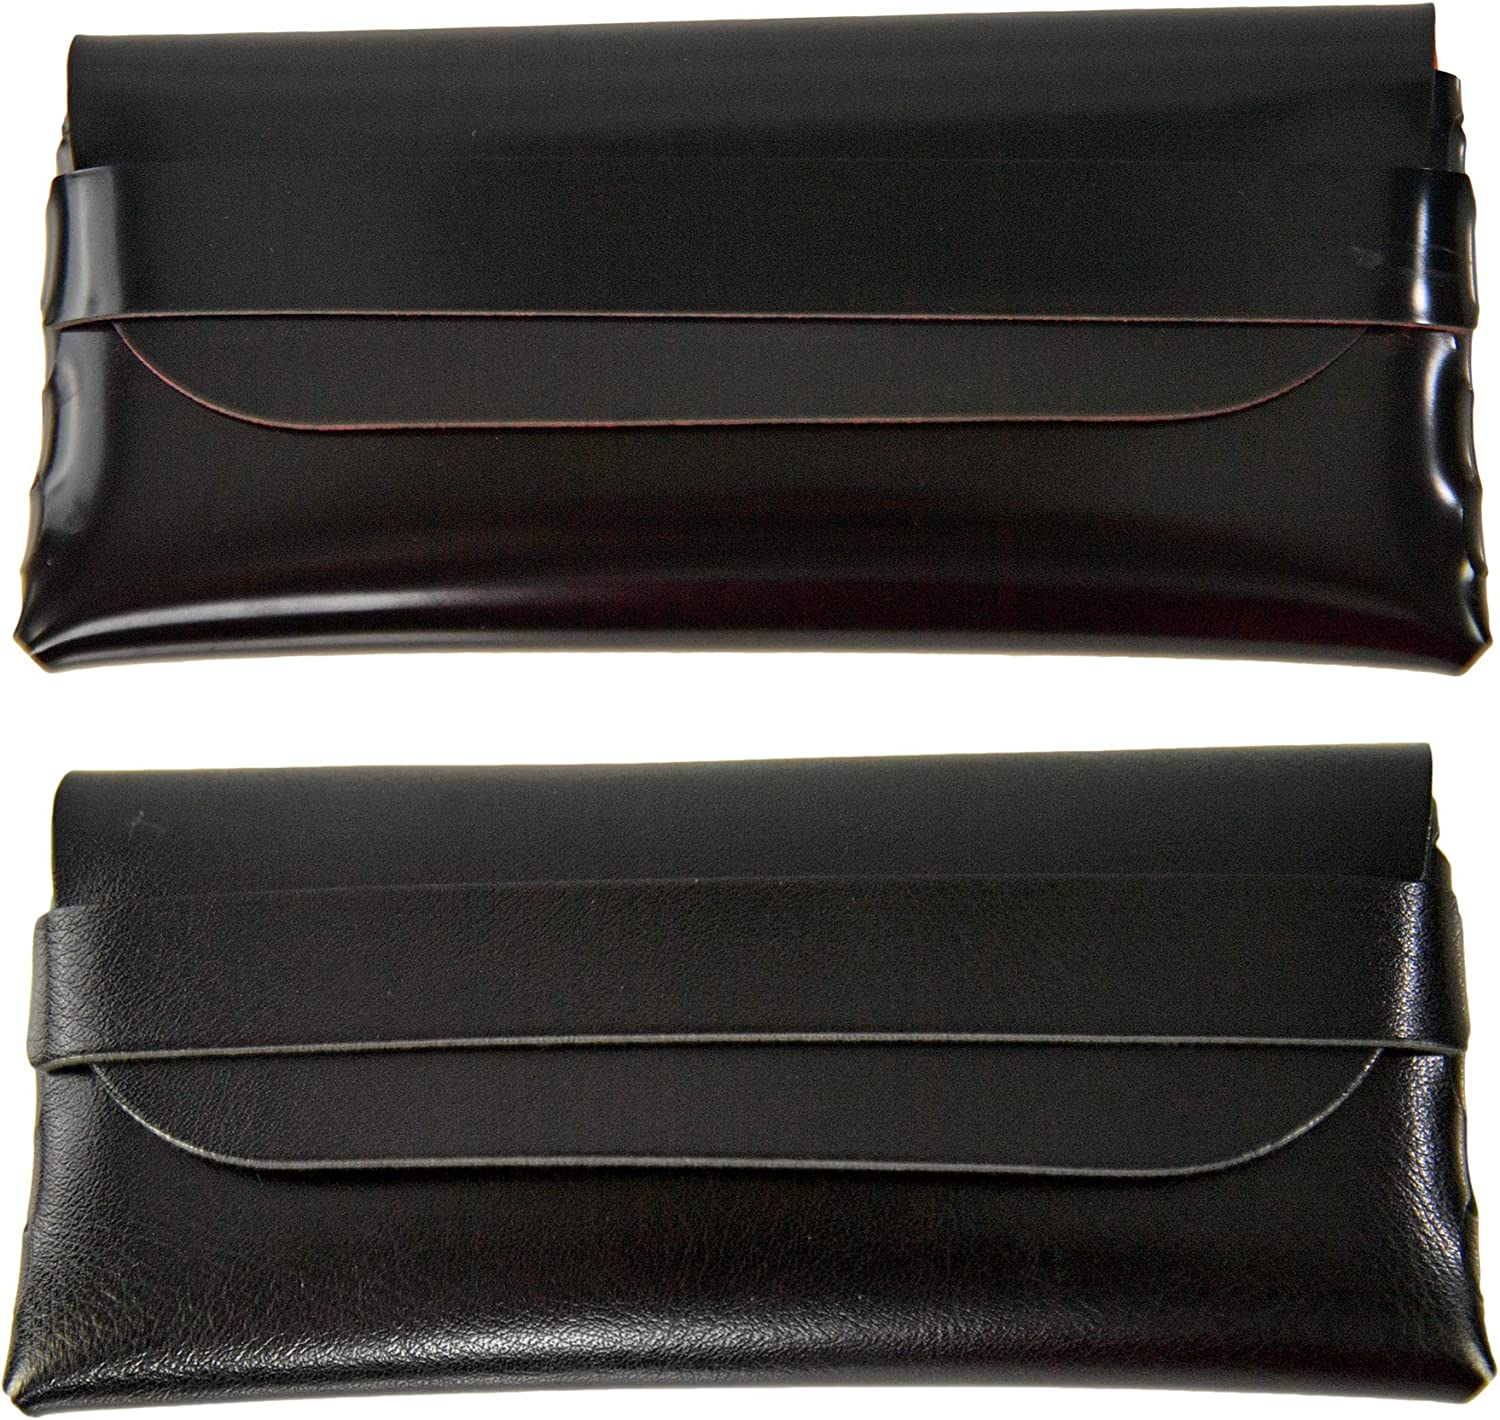 HOME- X Set of 2 Soft Fold-Over Eyeglass Cases, Reading Glasses Cases, Eyeglass Pouches, Set of 2, 6 ¾